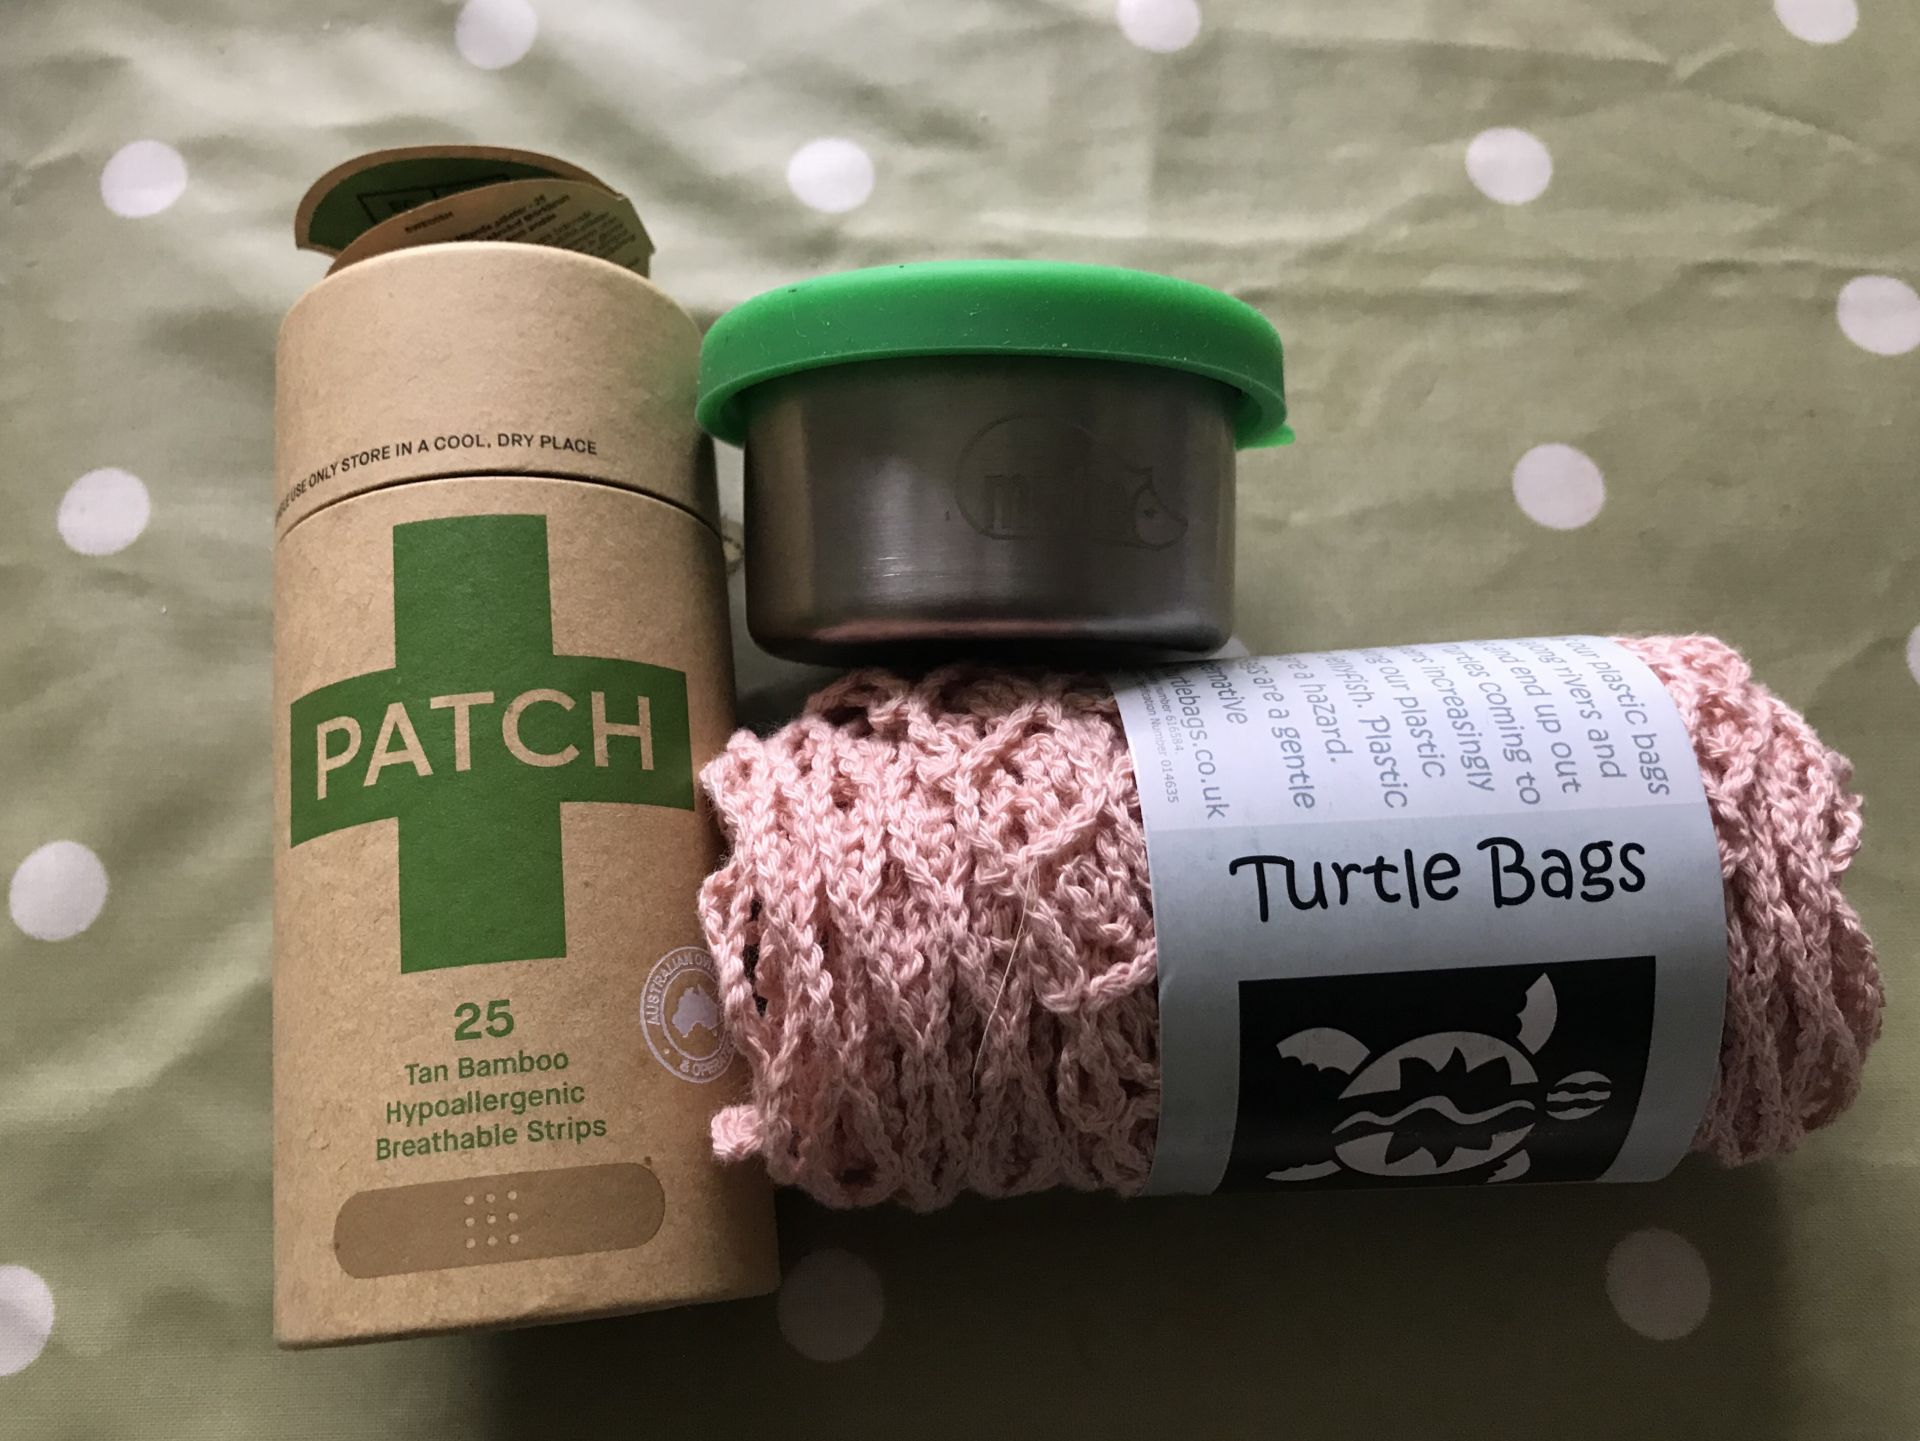 plasters, turtle bag and a stainless steel pot